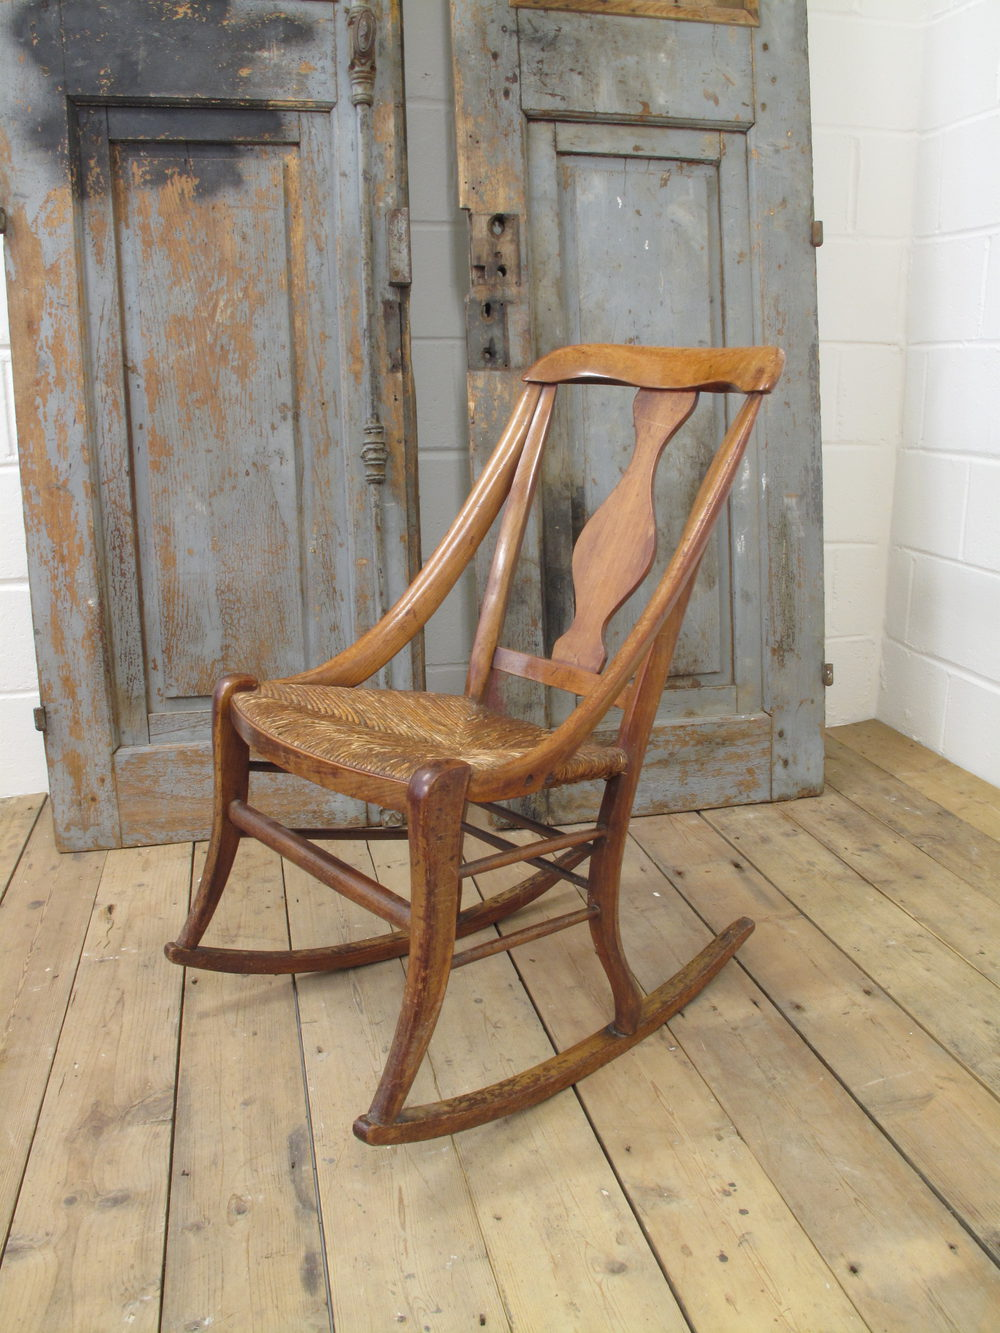 French Cherrywood Rocking Chair, Circa 1900 Antique ... - French Cherrywood Rocking Chair, Circa 1900 - Antiques Atlas